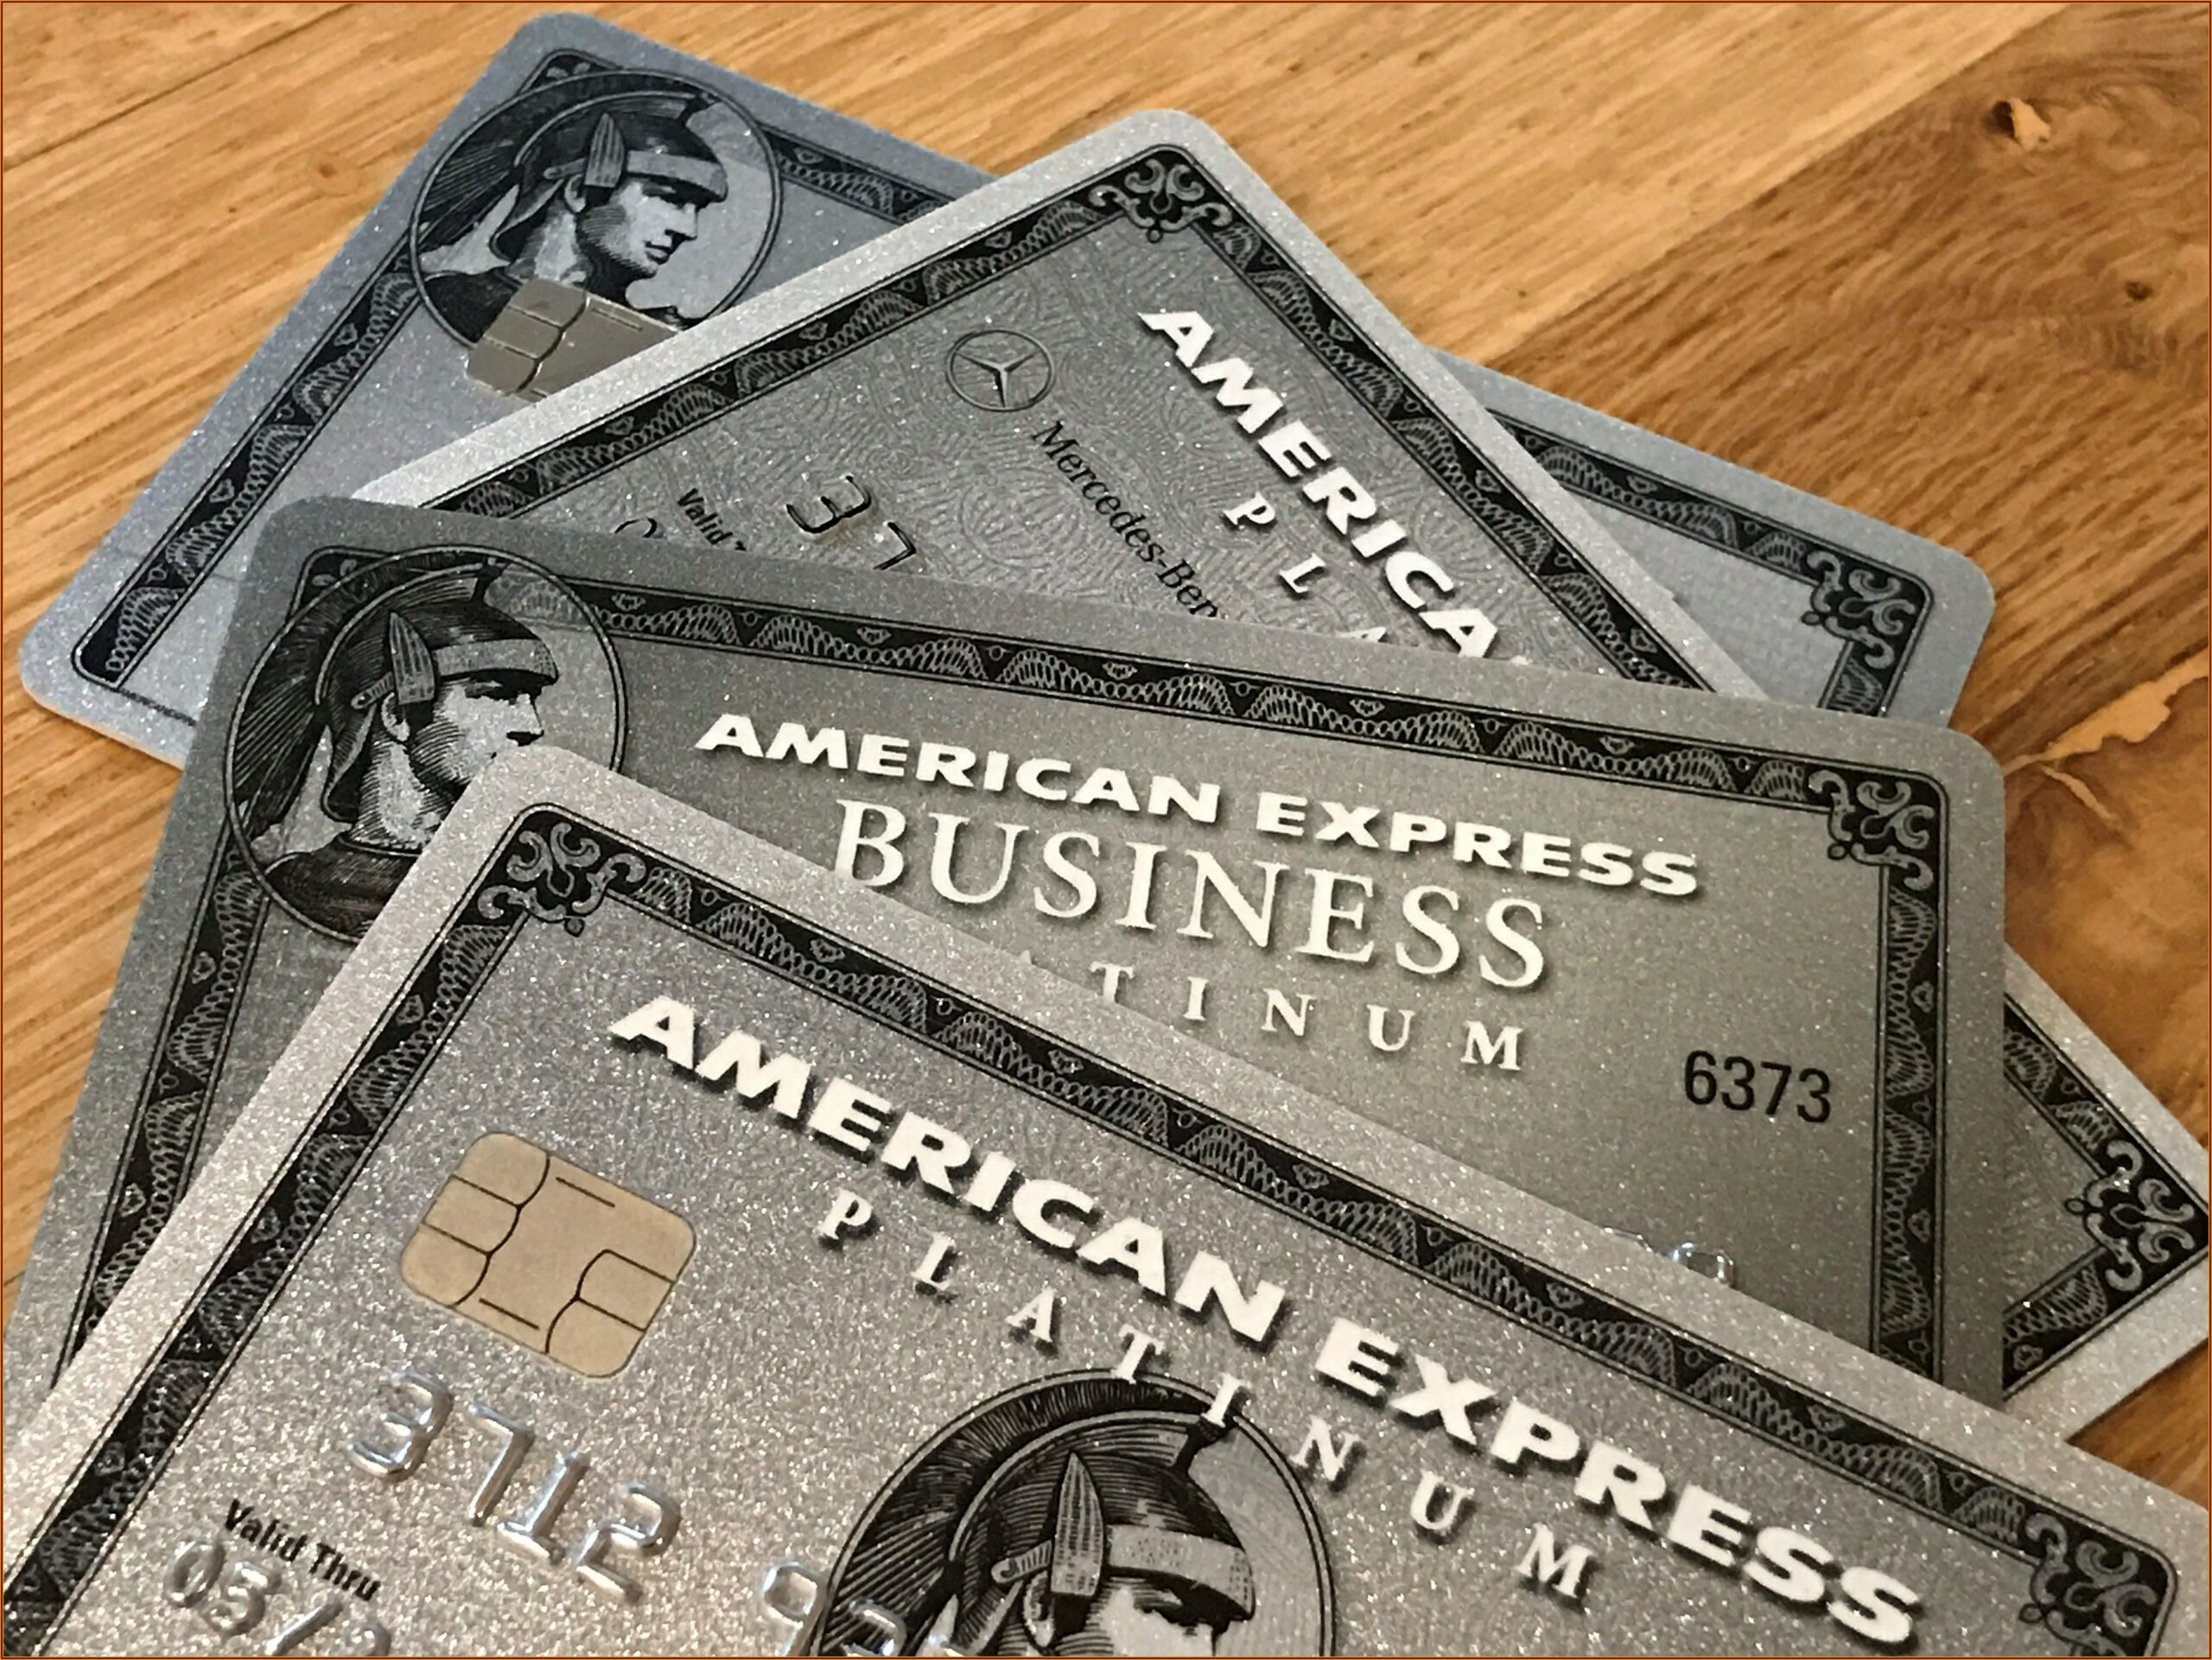 Best American Express Business Card Offers